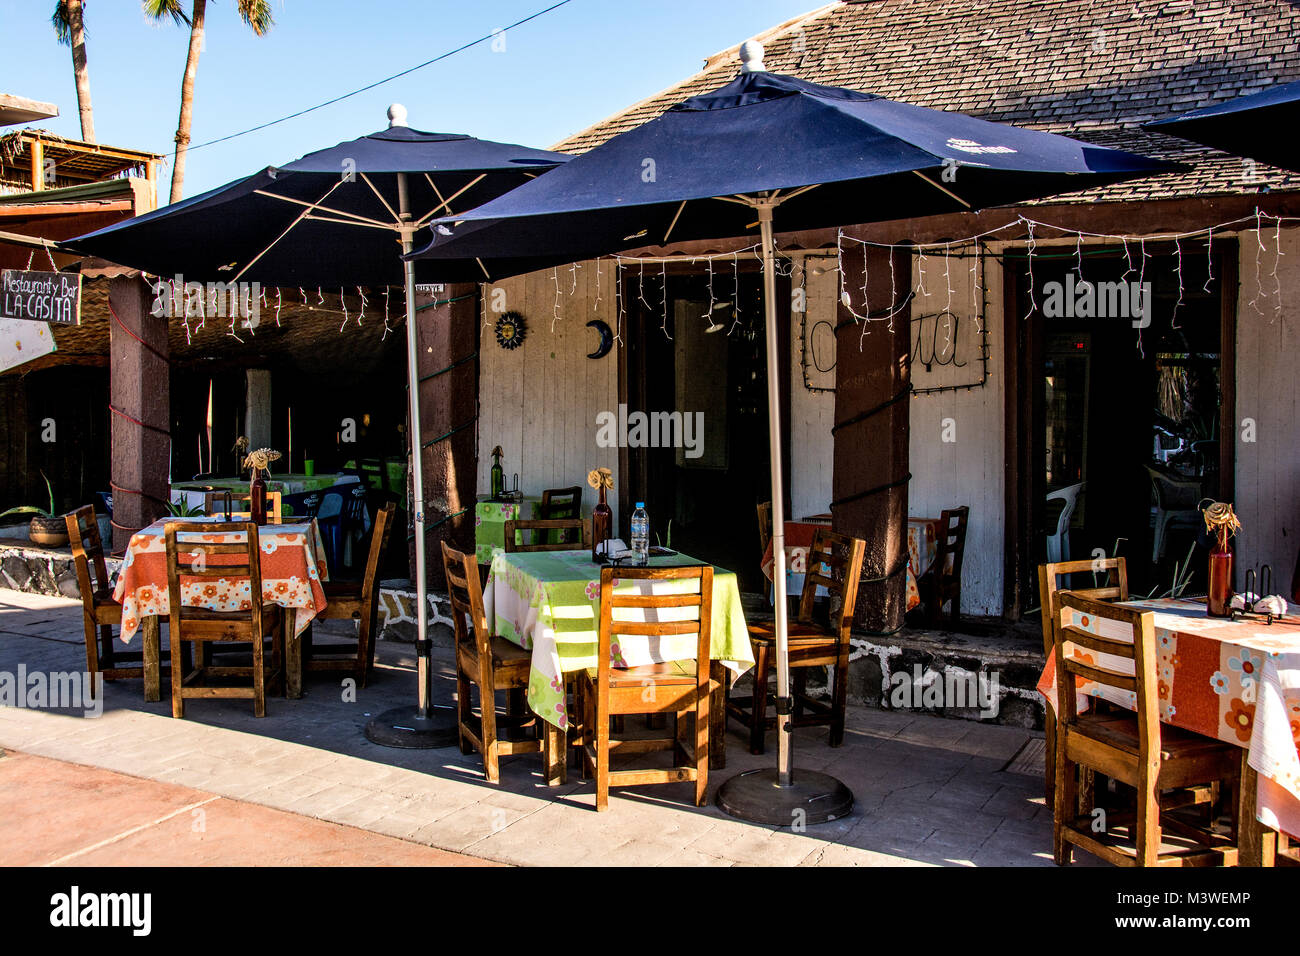 La Casista (meaning Little House) a Mexican restaurant about a quarter mile from the downtown area of Loreto. - Stock Image